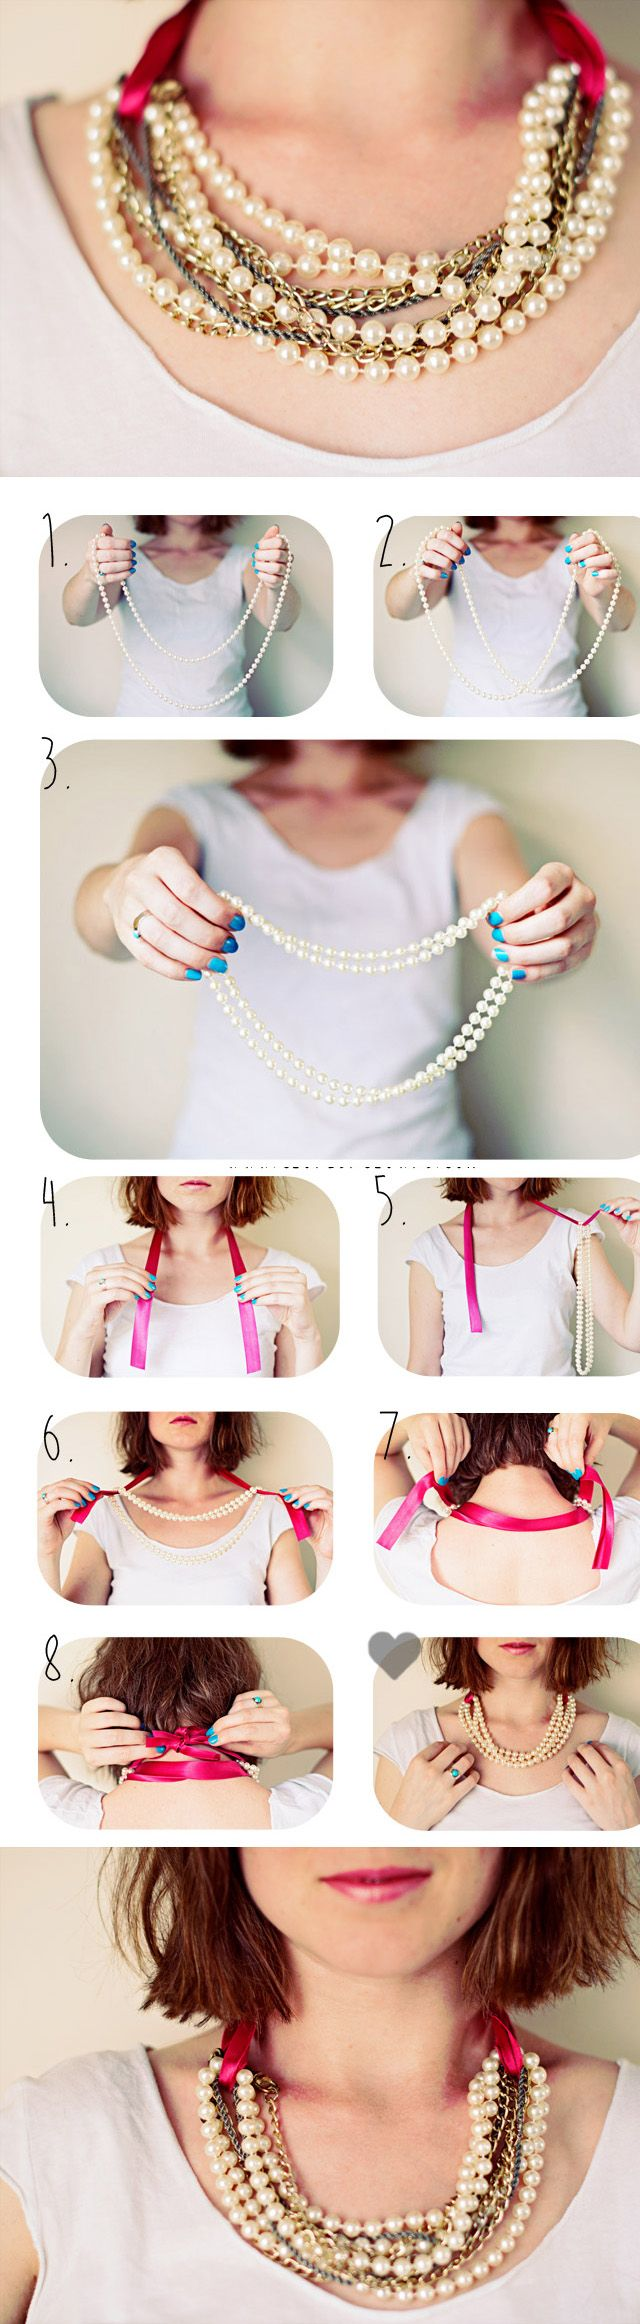 DIY layered Necklace in 5 min...great idea!